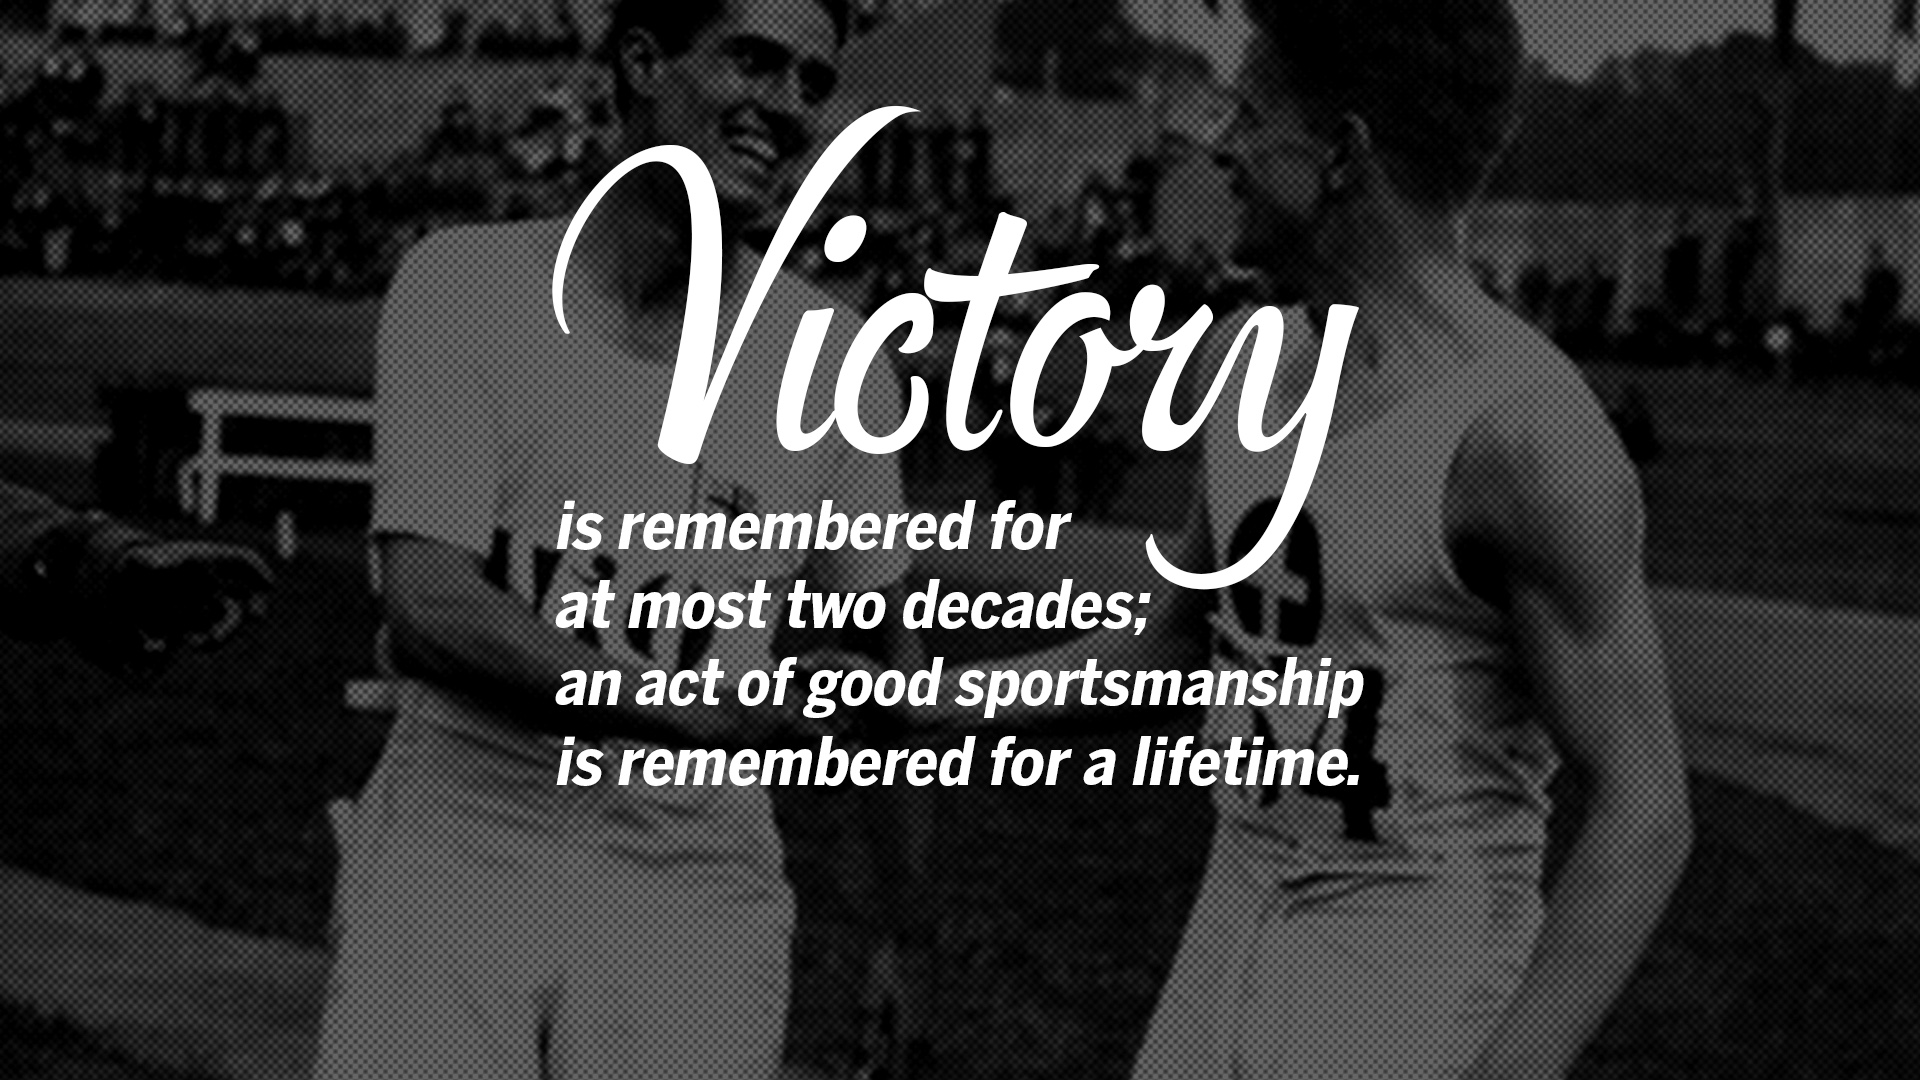 sportsmanship quotes teamwork inspirational sports victory cricket most team motivational sport football basketball remembered decades saying volleyball soccer games hockey